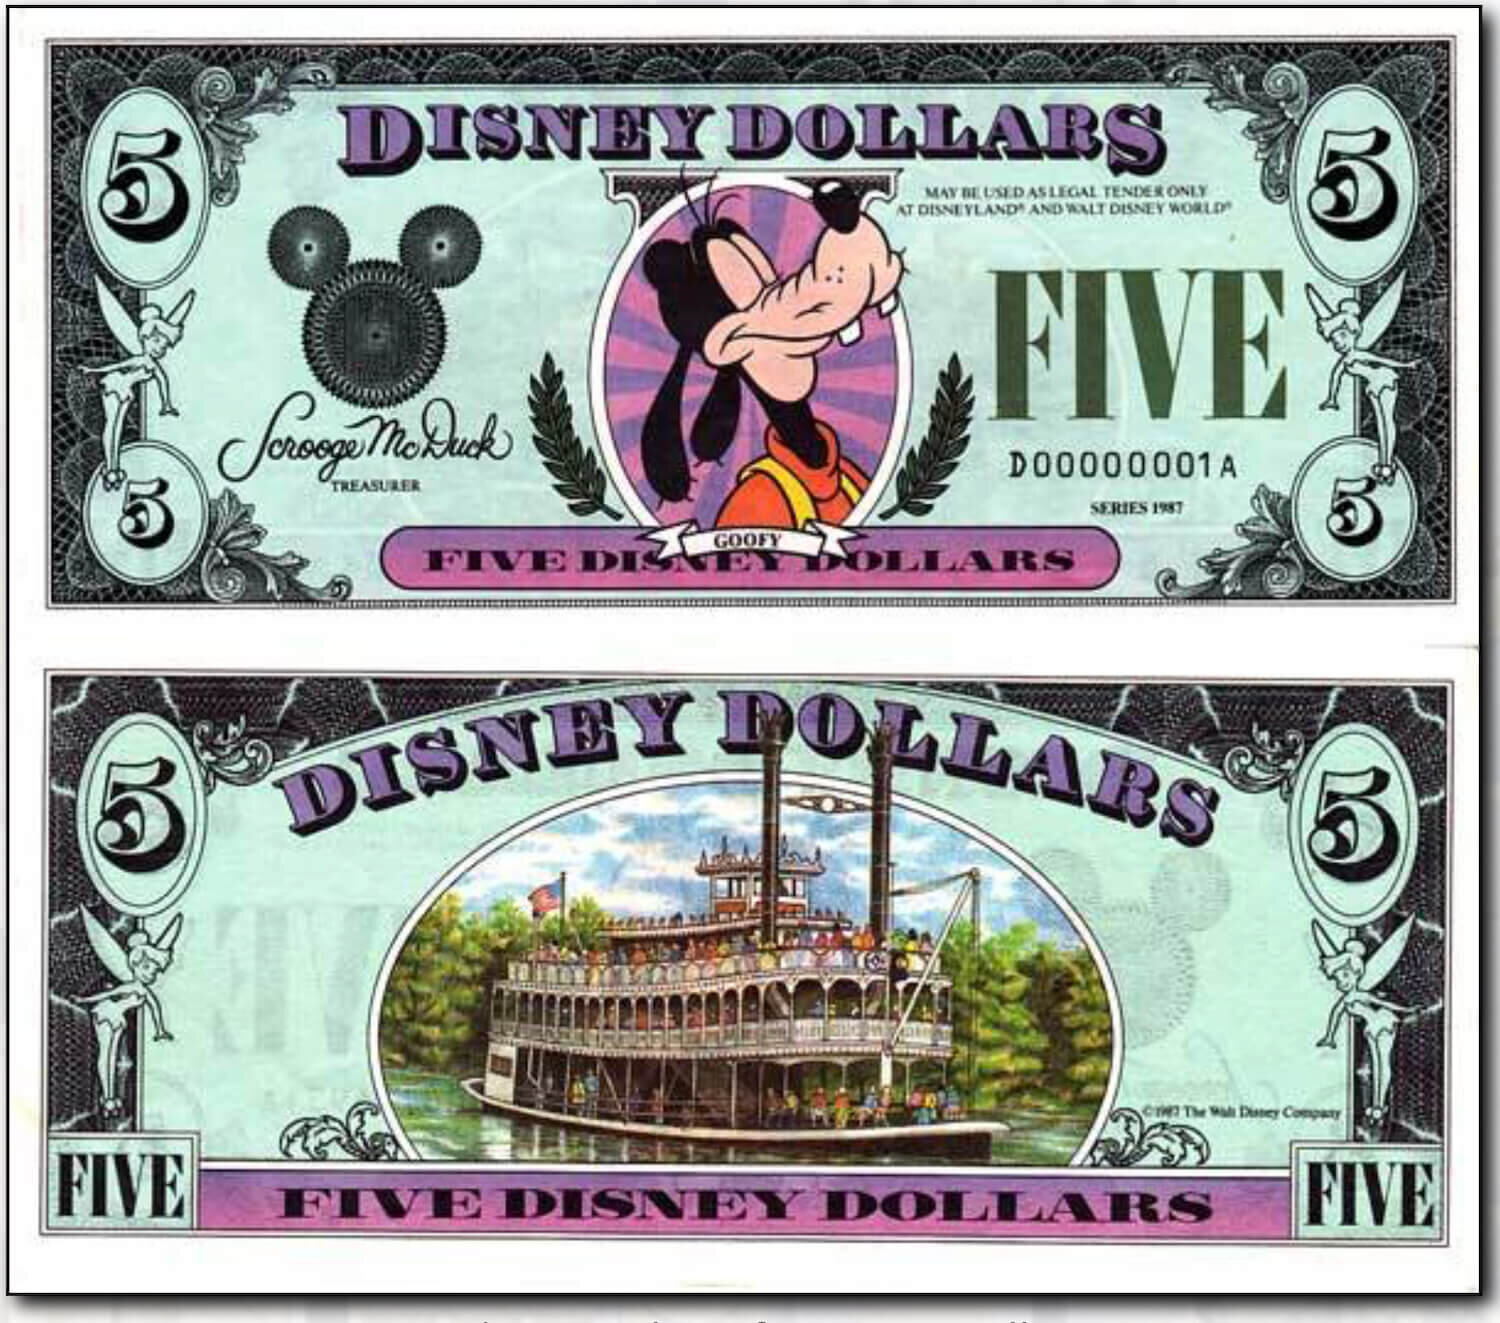 Disney Dollar Low Serial Number Goofy - Courtesy of  http://www.disneydollars.net